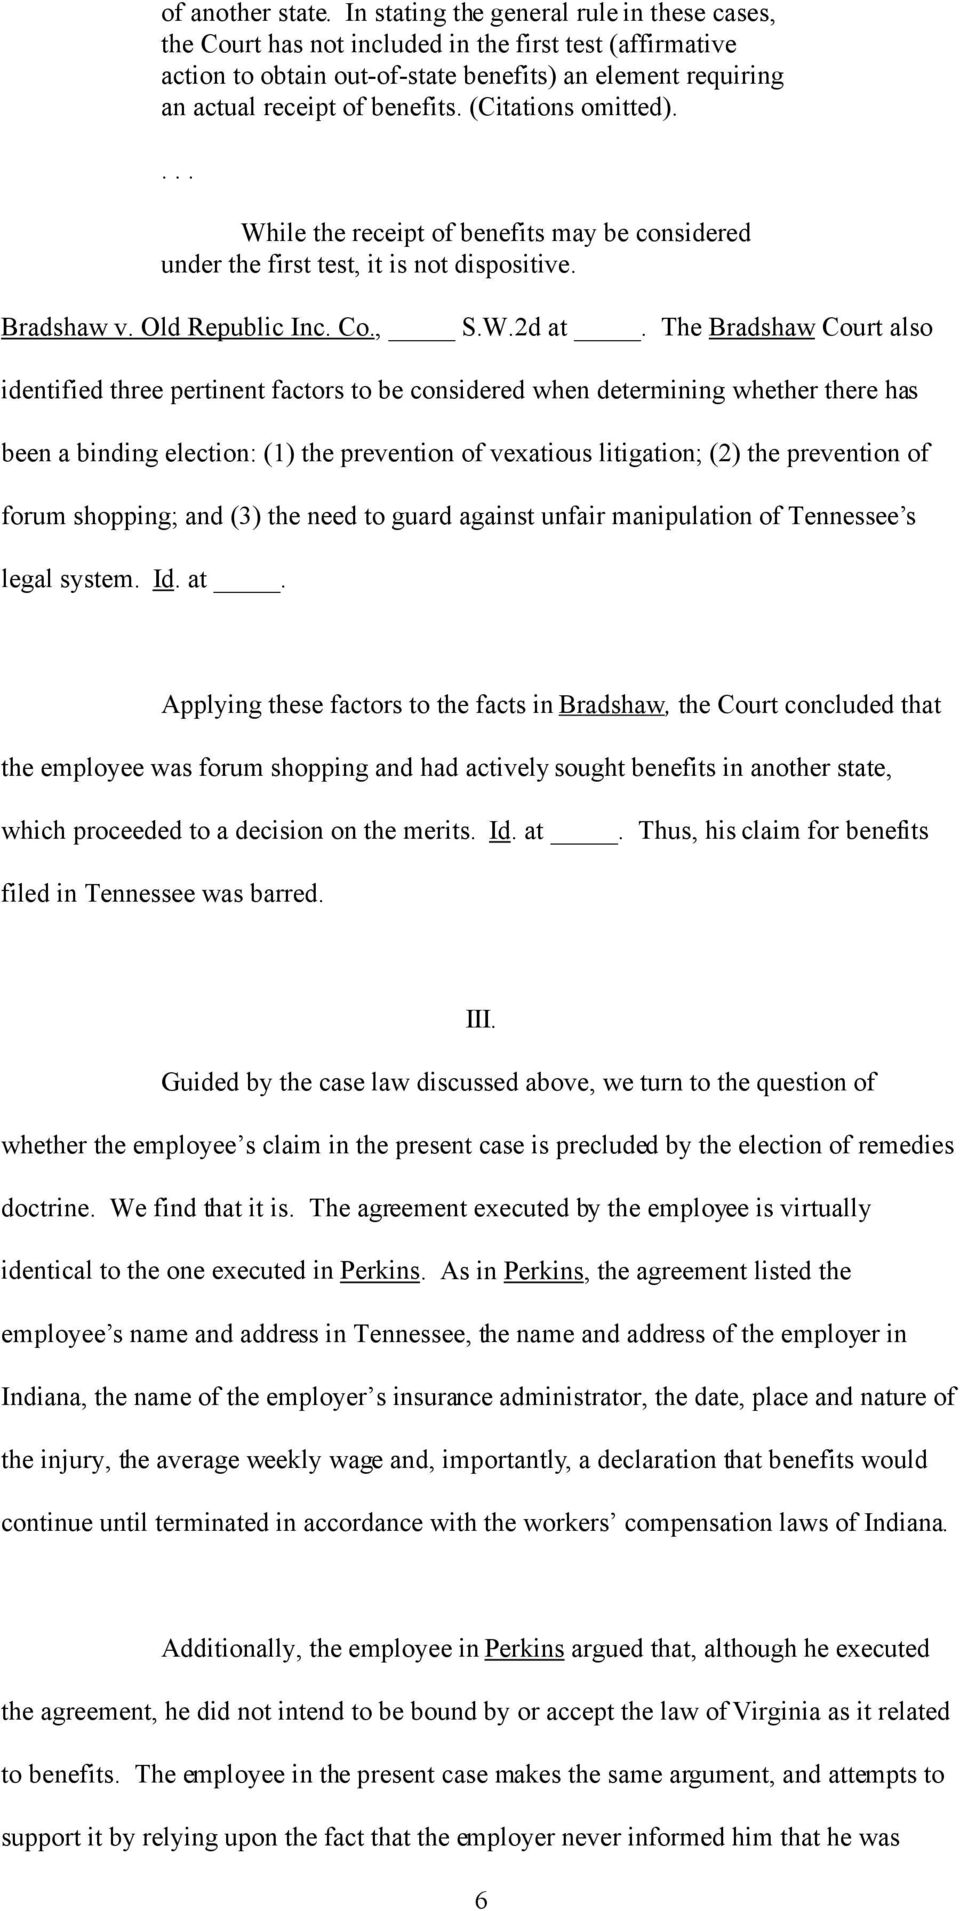 (Citations omitted).... While the receipt of benefits may be considered under the first test, it is not dispositive. Bradshaw v. Old Republic Inc. Co., S.W.2d at.